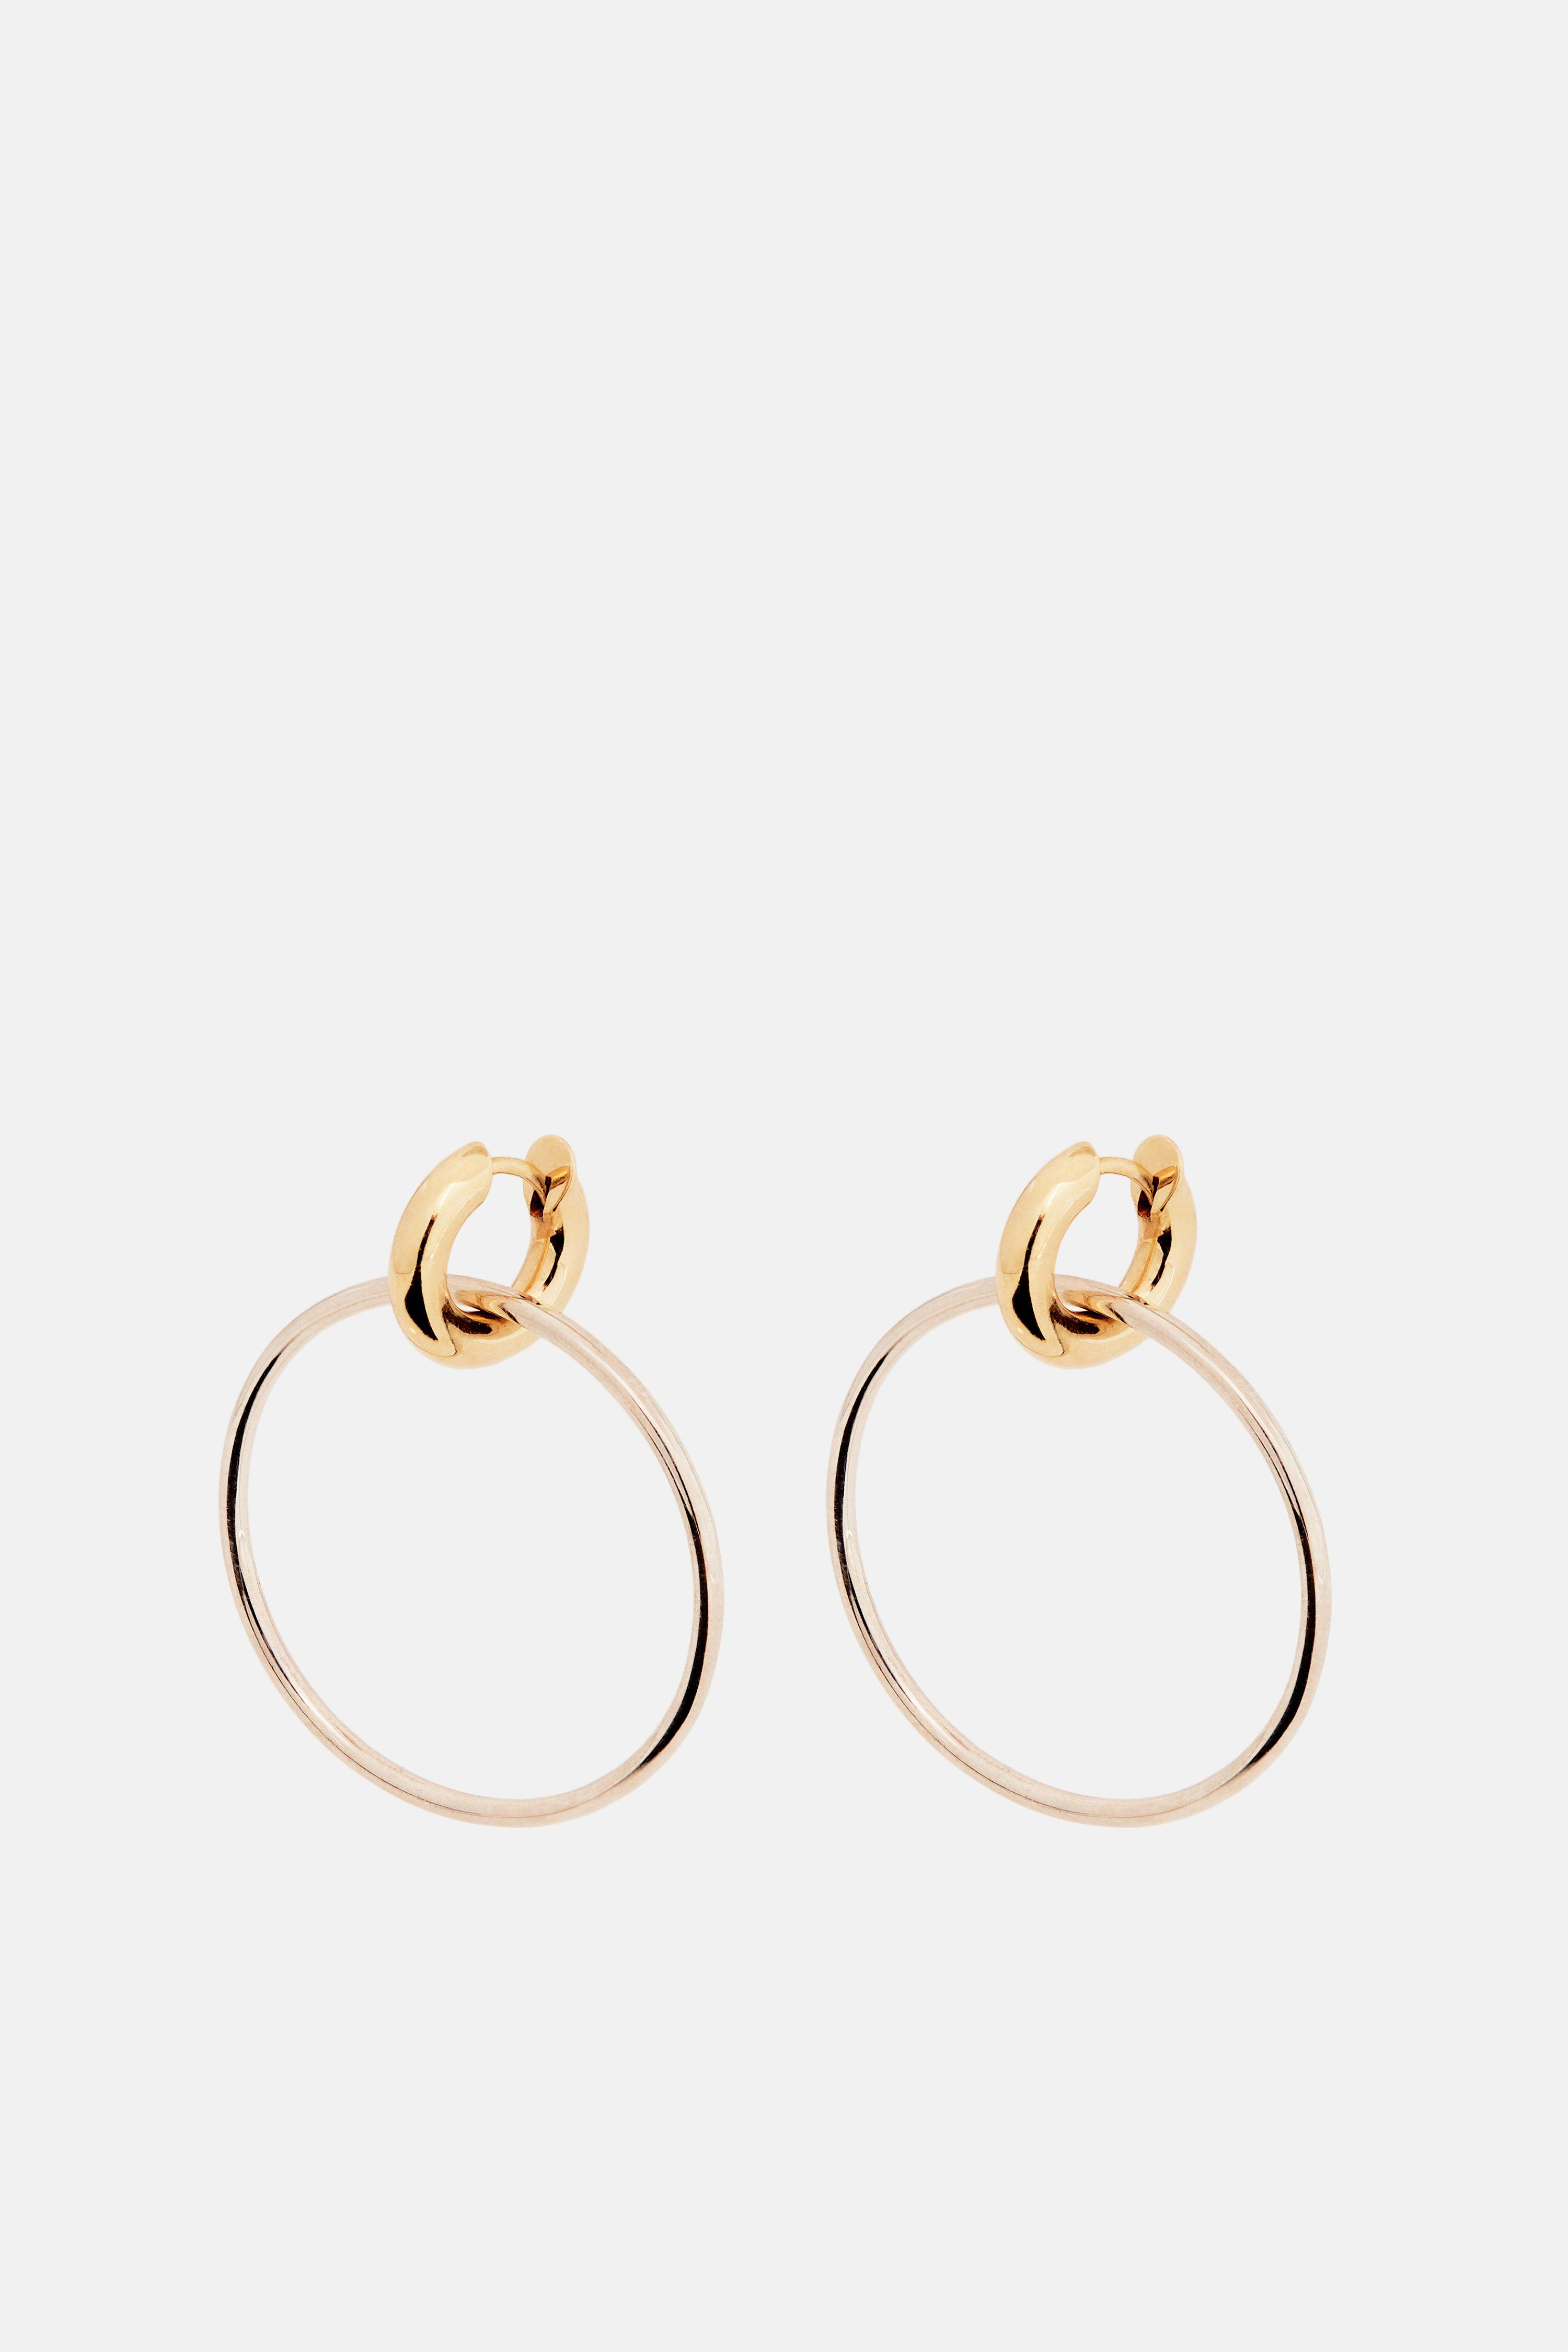 Spinelli Kilcollin Ara Hoop Earrings With Micropave White Diamond Annulets - Yellow Gold Os 5wnRfSfR